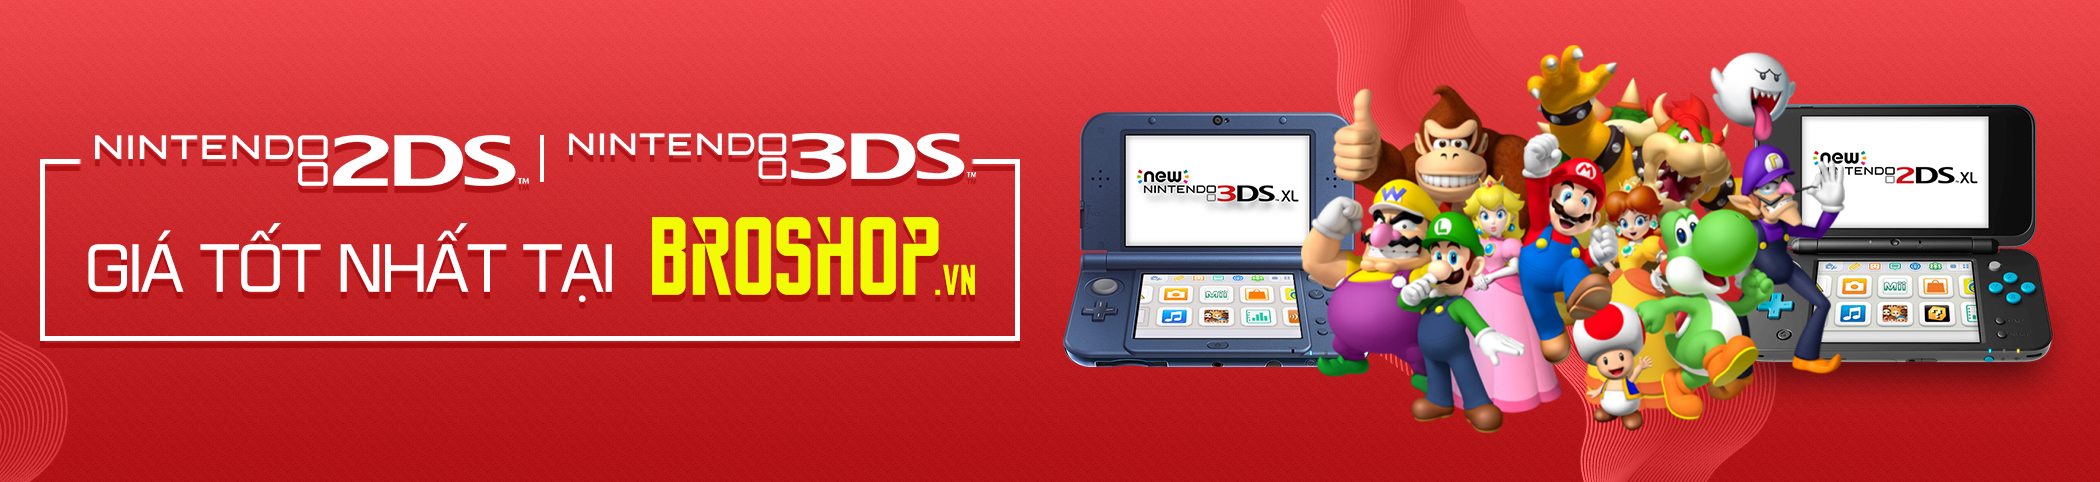 Phụ Kiện Nintendo 3DS 2DS